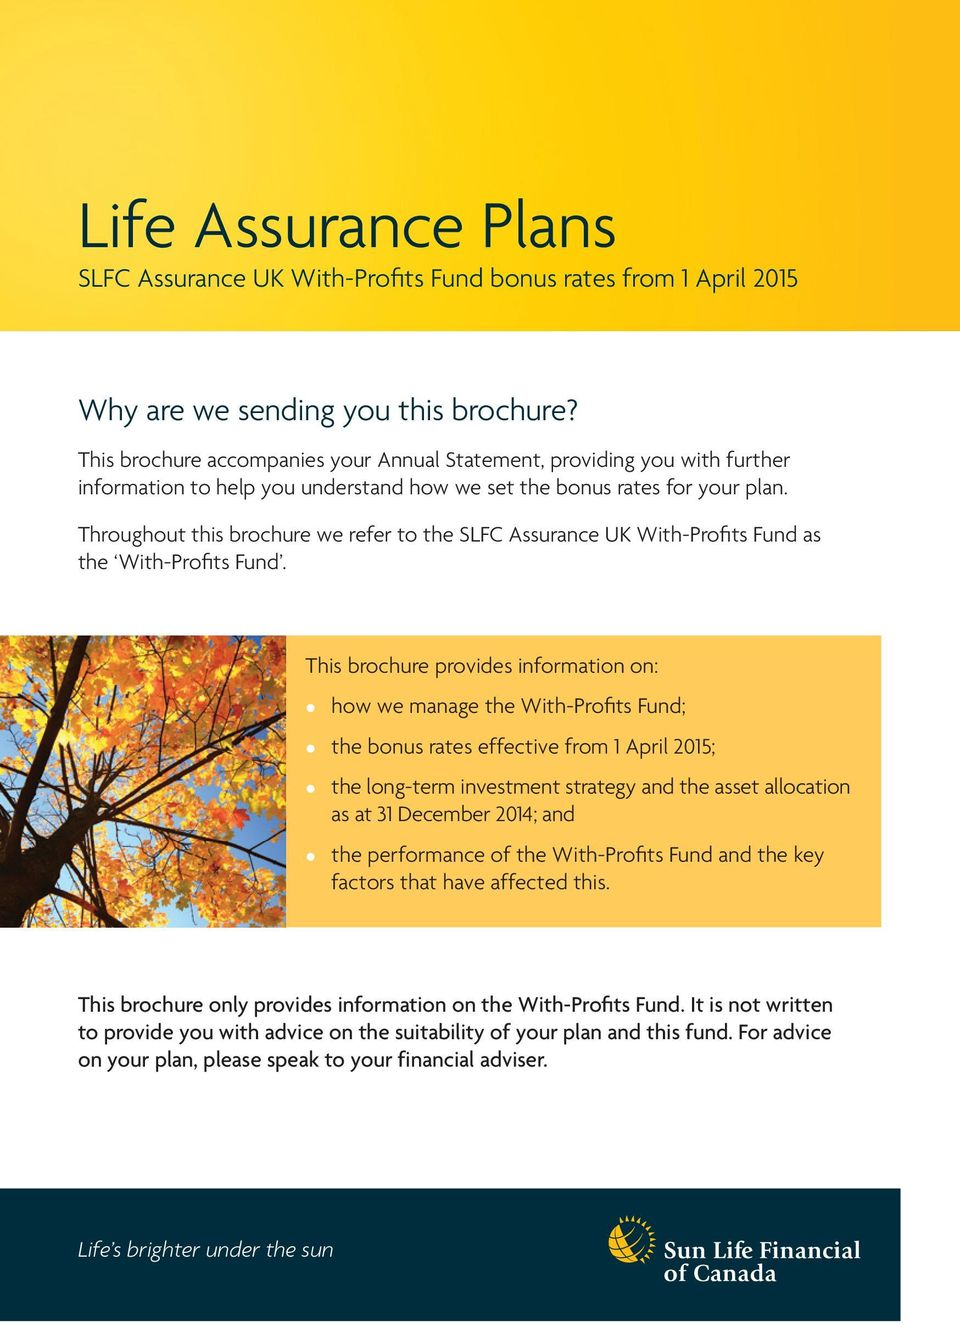 Throughout this brochure we refer to the SLFC Assurance UK With-Profits Fund as the With-Profits Fund.